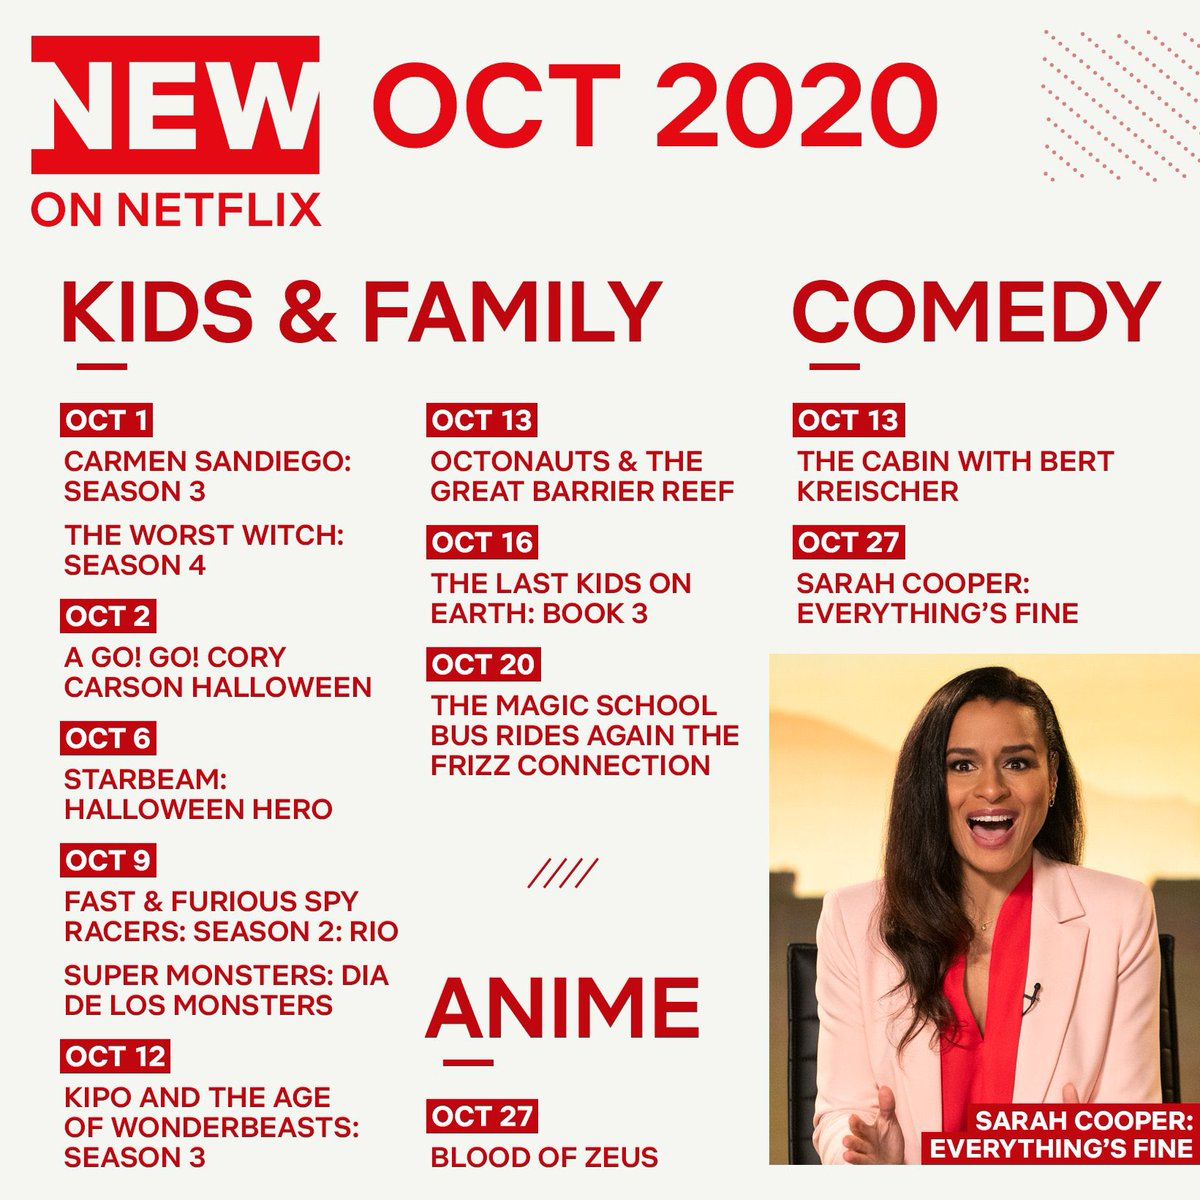 Here is the what's coming up in Netflix this October 🥁📢 https://t.co/QmU5OXRsyV